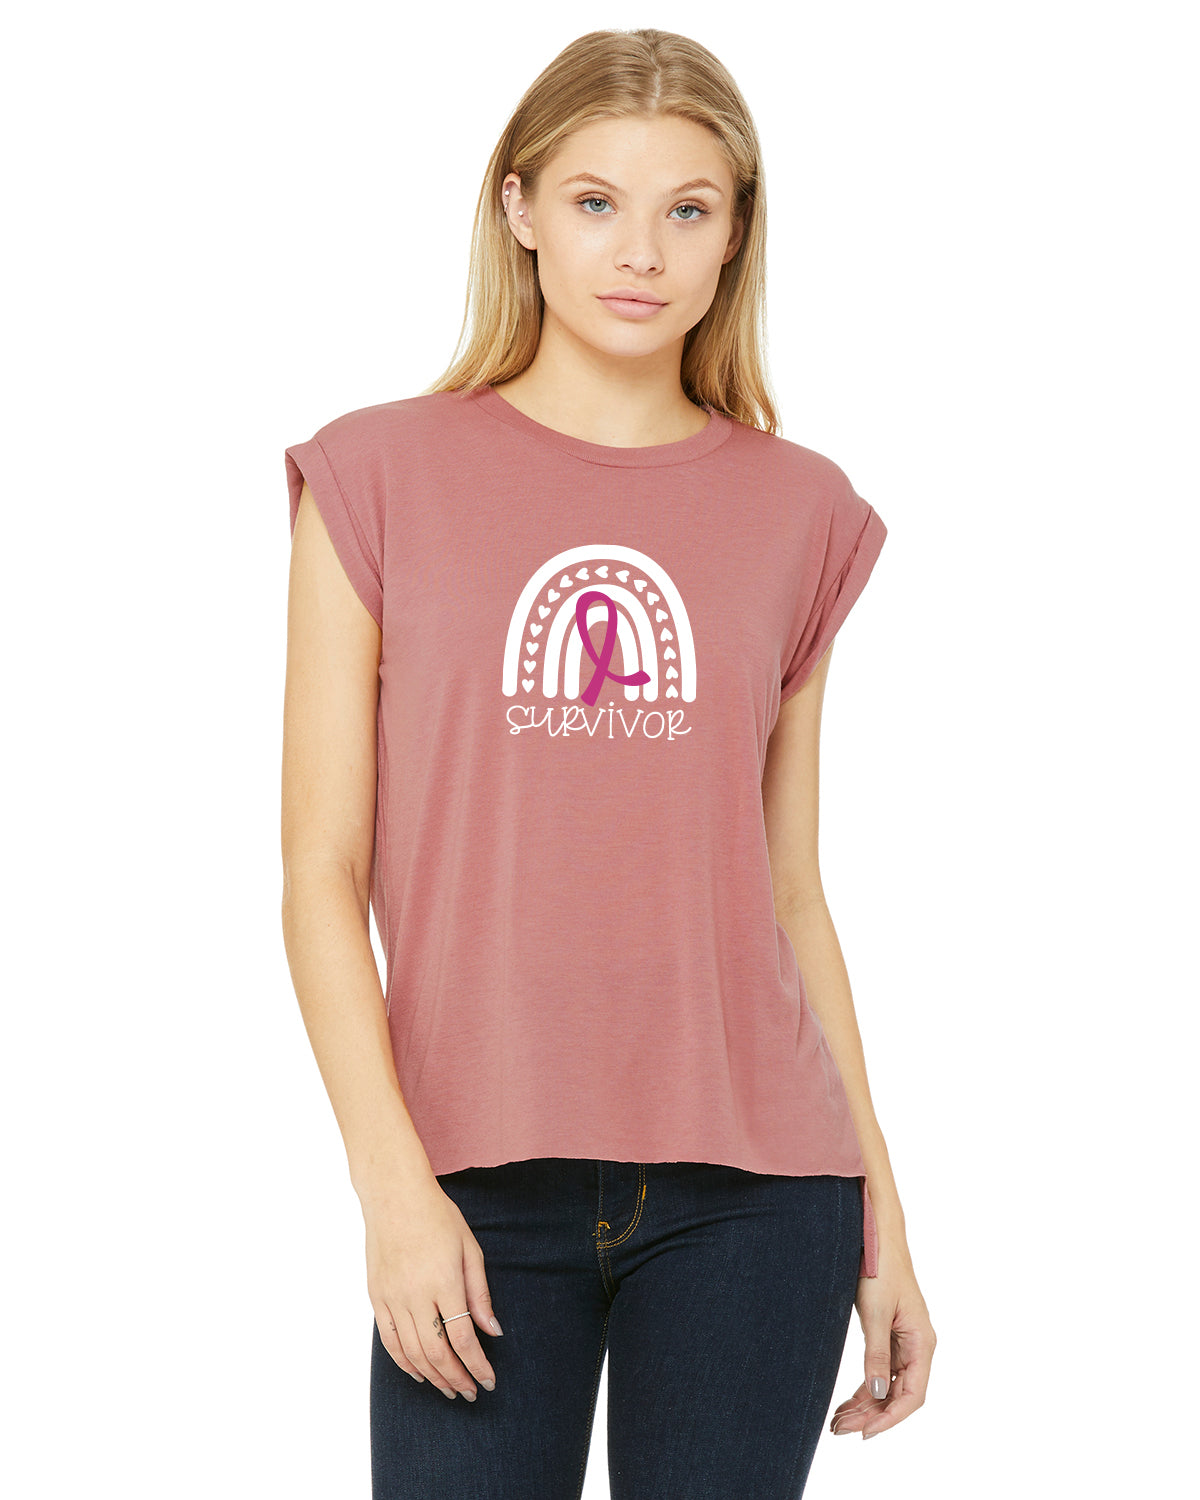 October Breast Cancer Awareness Ladies Shirt